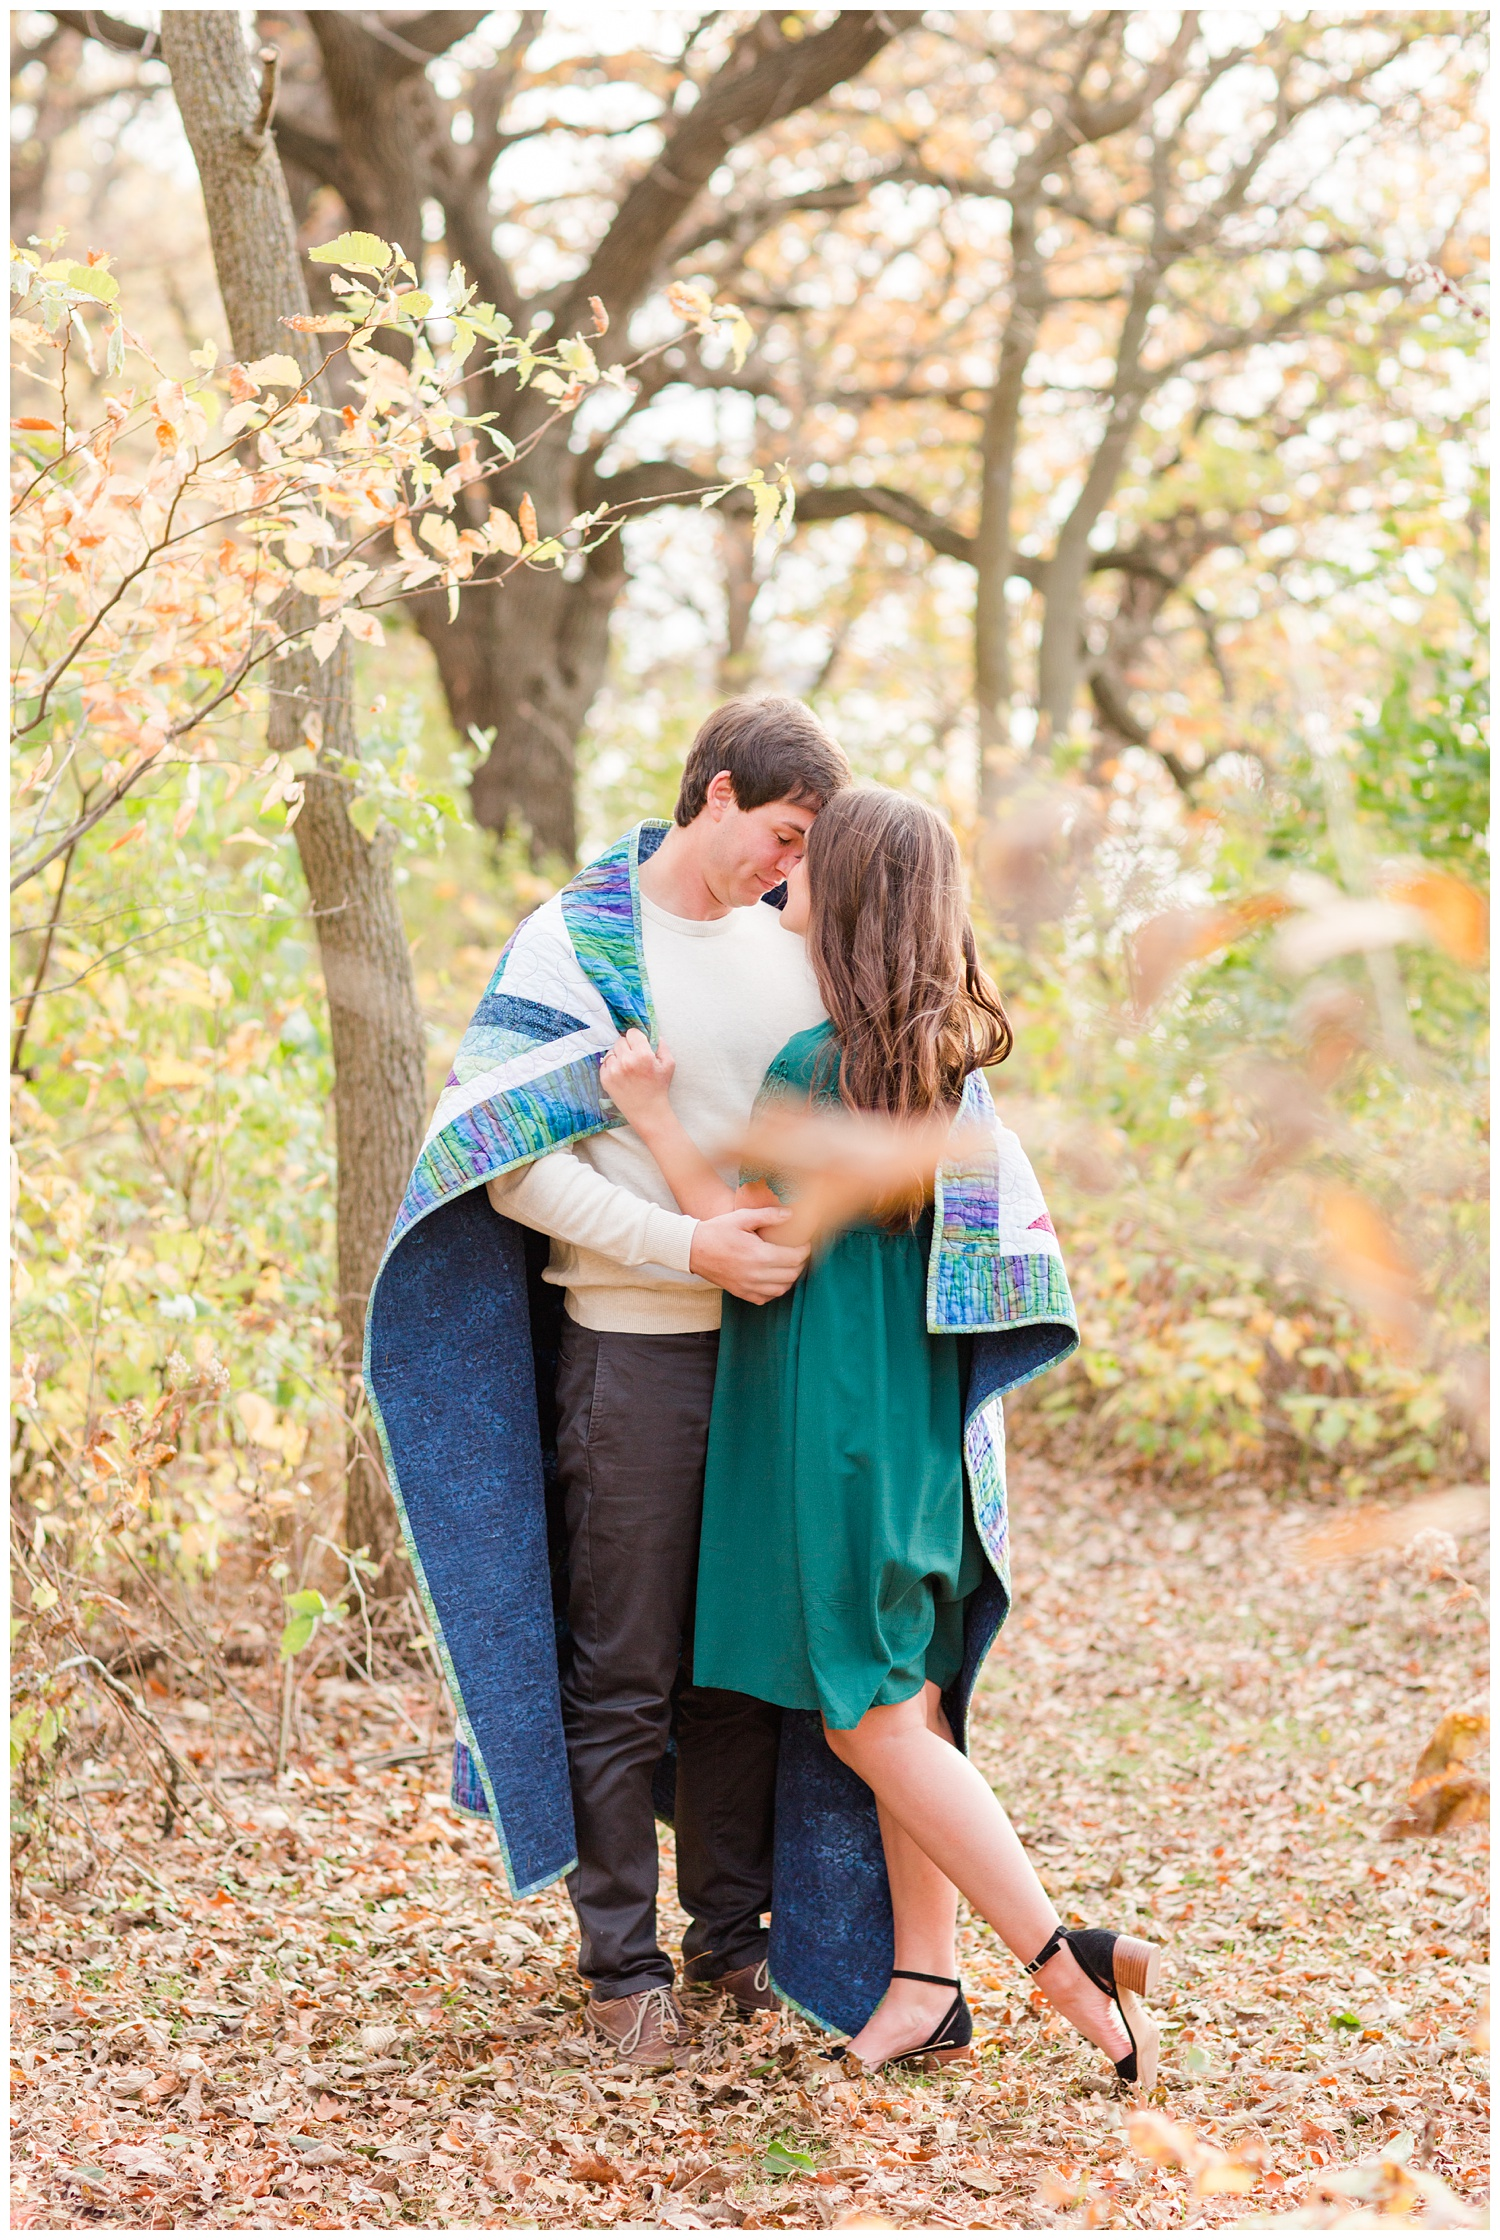 Fall in Iowa, Jenna wearing an emerald green dress embraces Brady while both wrapped in a quilt in the middle of an autumn path at Lost Island Nature Center | CB Studio